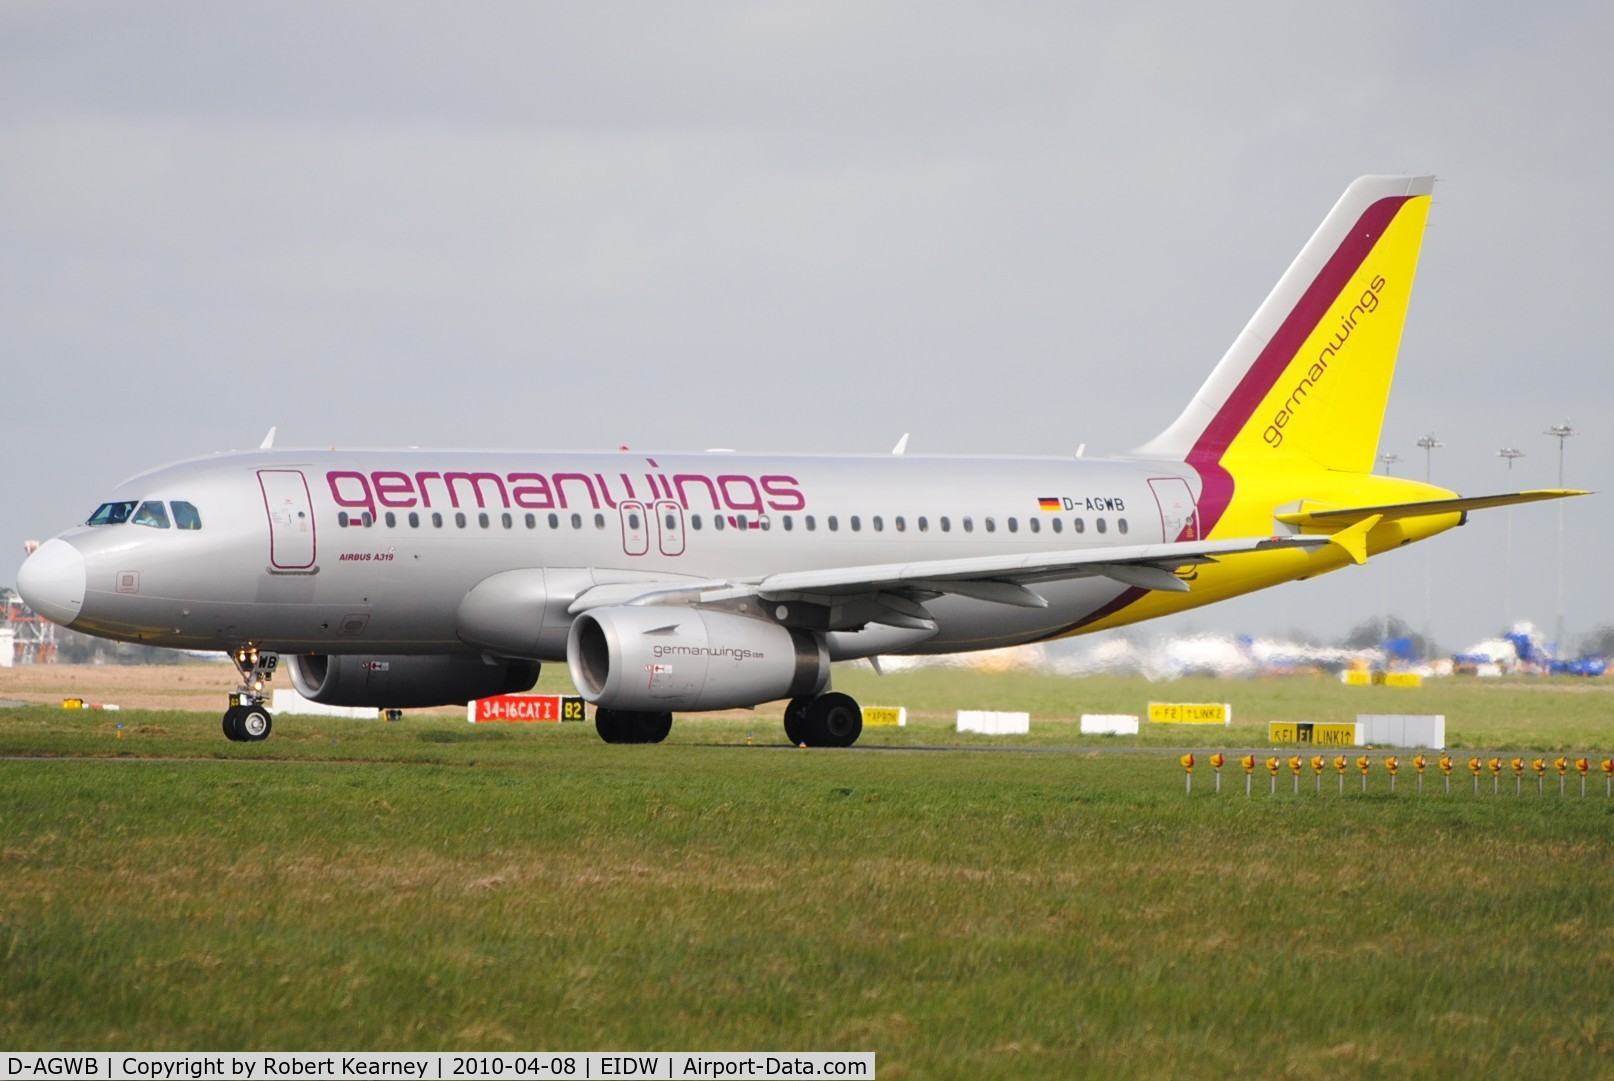 D-AGWB, 2006 Airbus A319-111 C/N 2833, GermanWings lining up r/w 28